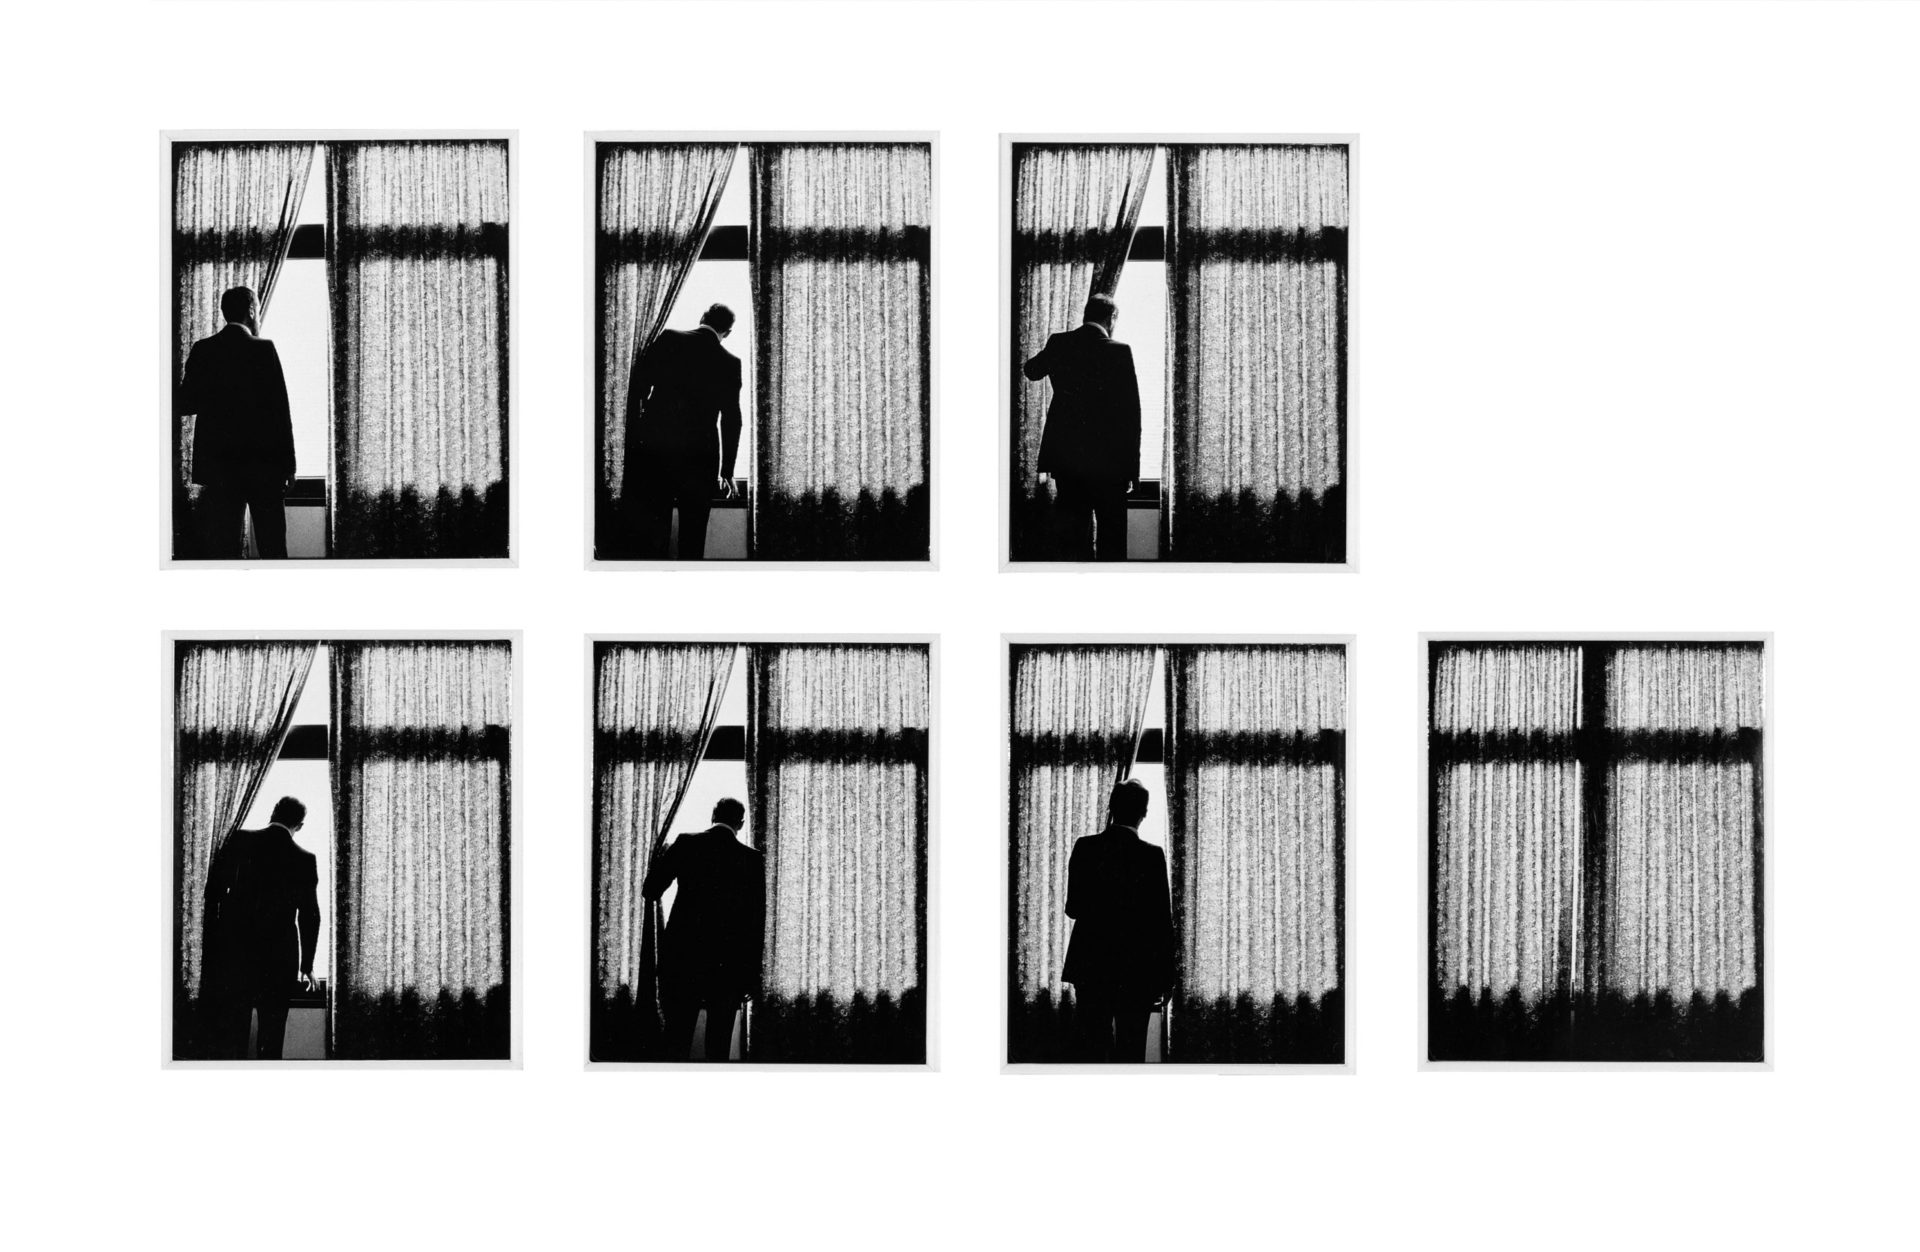 HREINN FRIÐFINNSSON Seven Times, 1979 seven black and white photographs each: 29,8 x 20,3 cm. Courtesy of i8 Gallery.